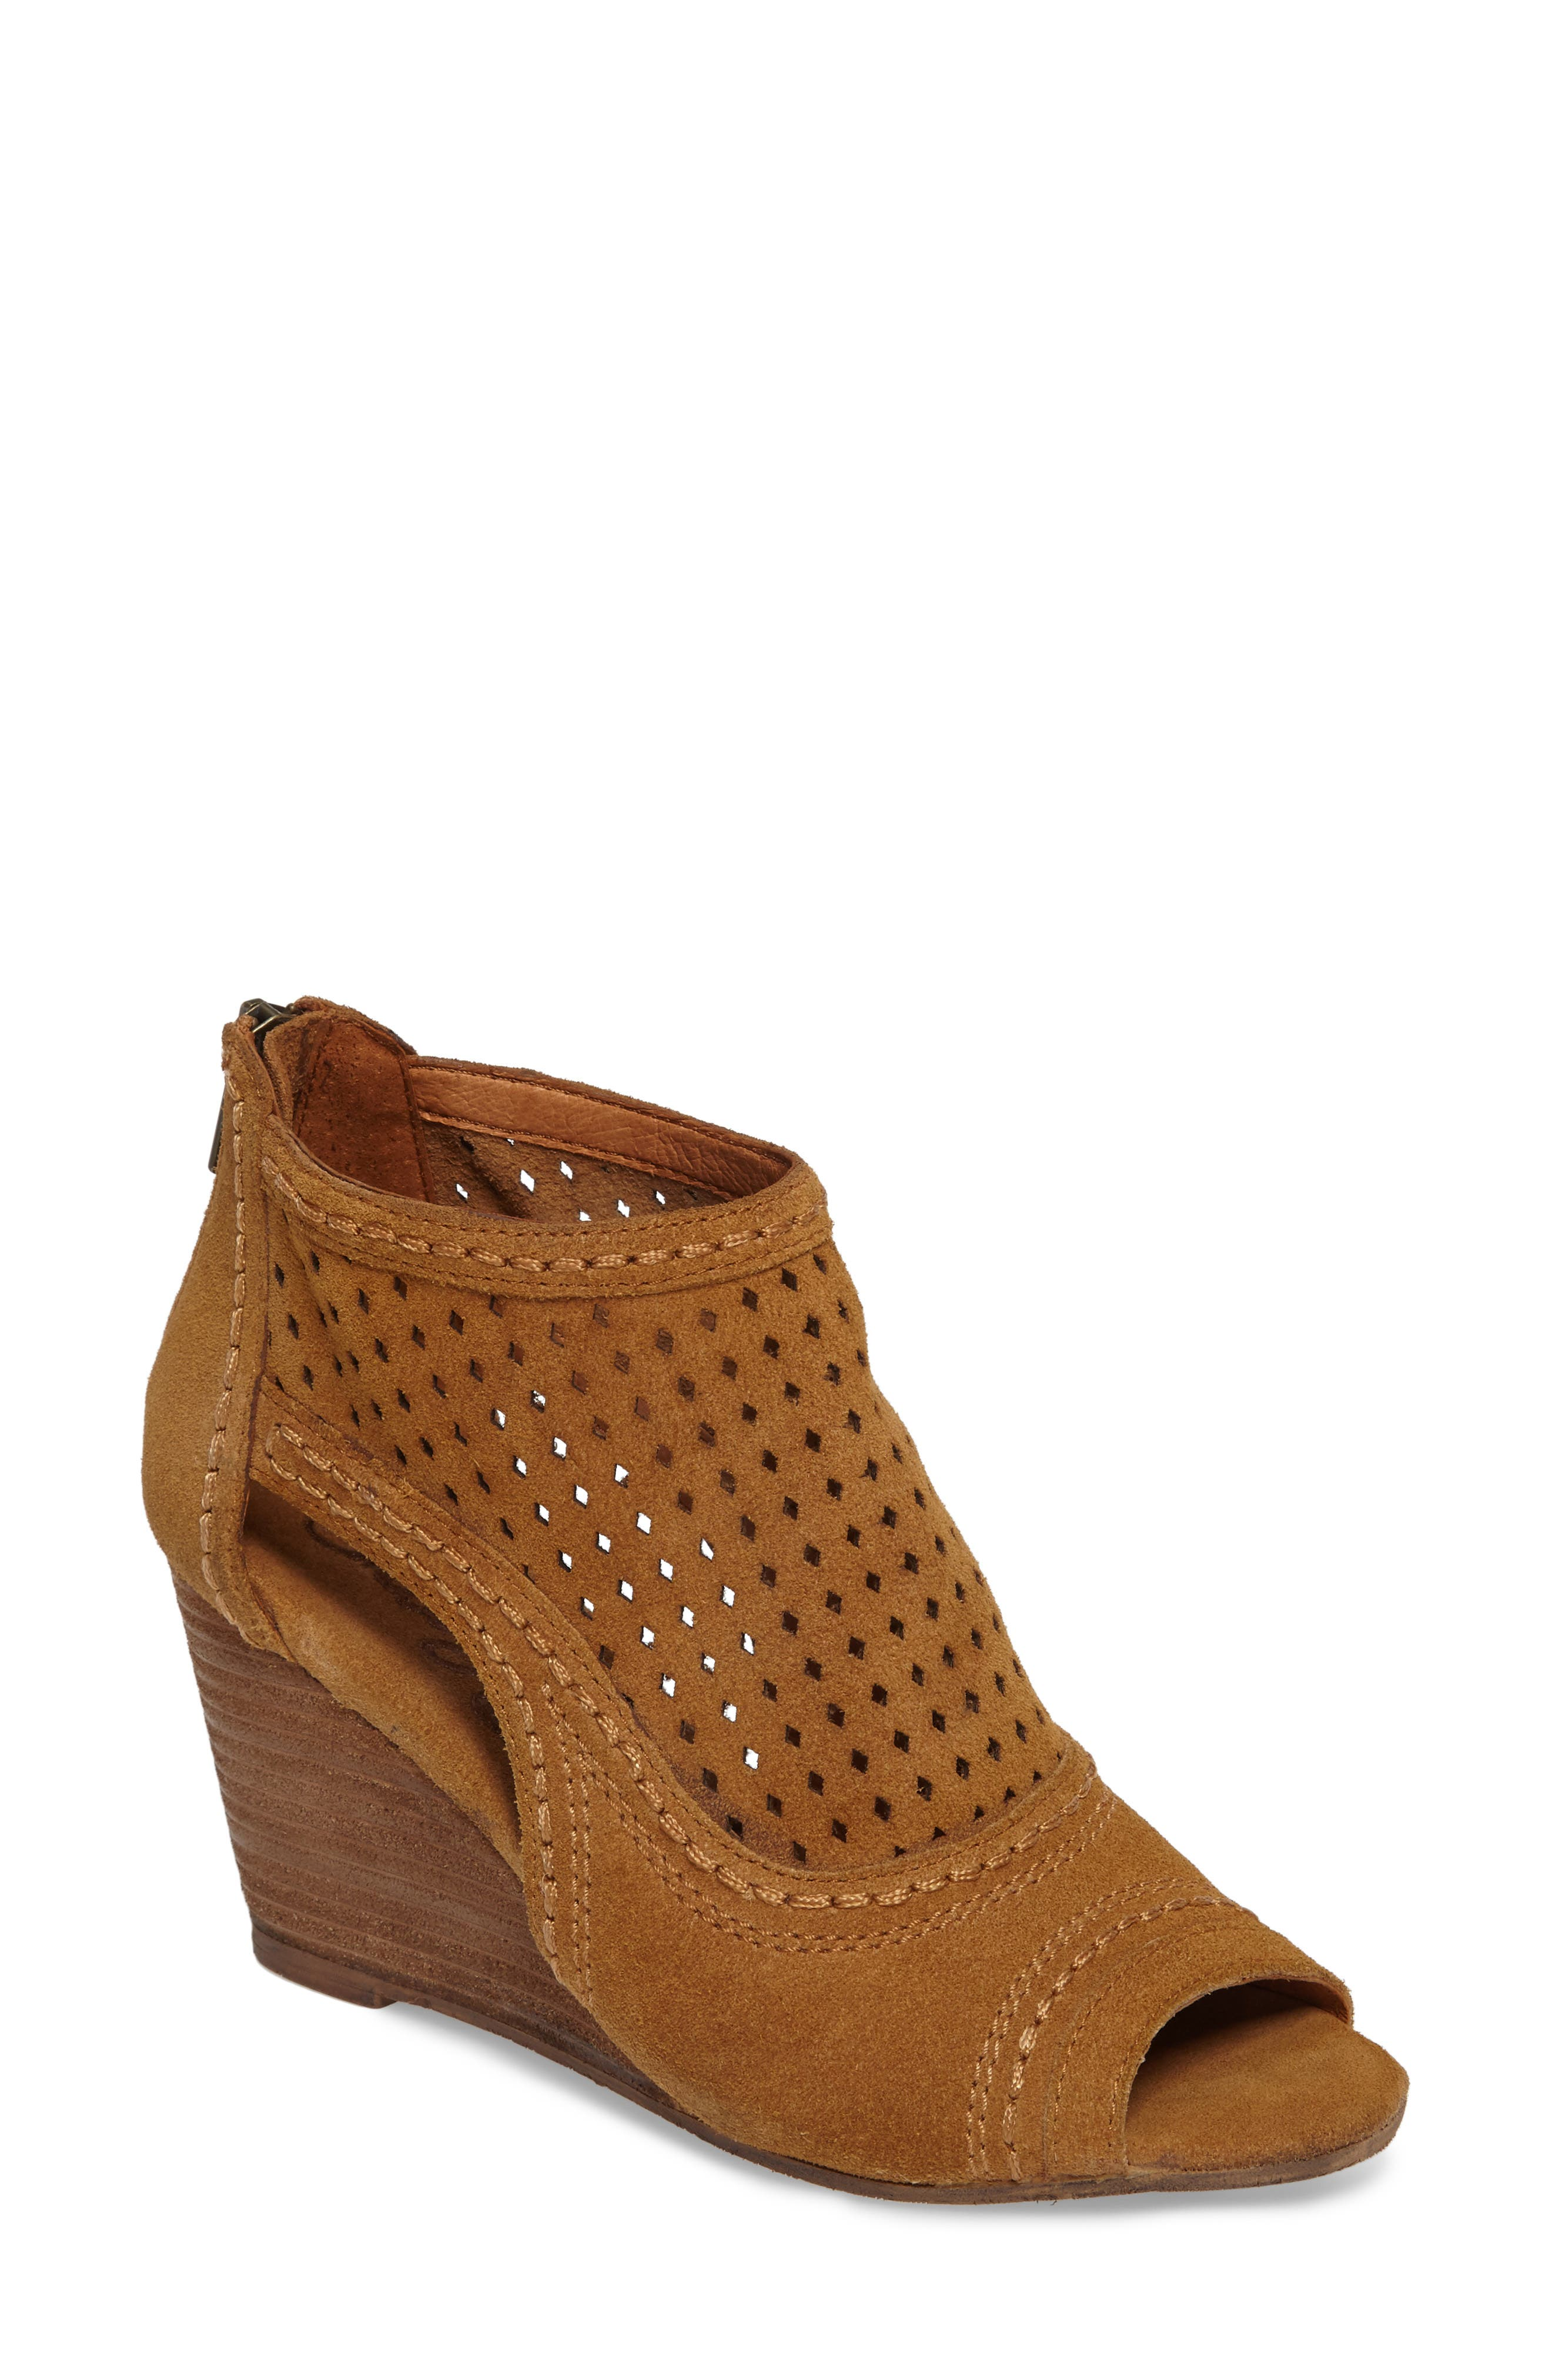 Sharon Perforated Wedge Sandal,                         Main,                         color,